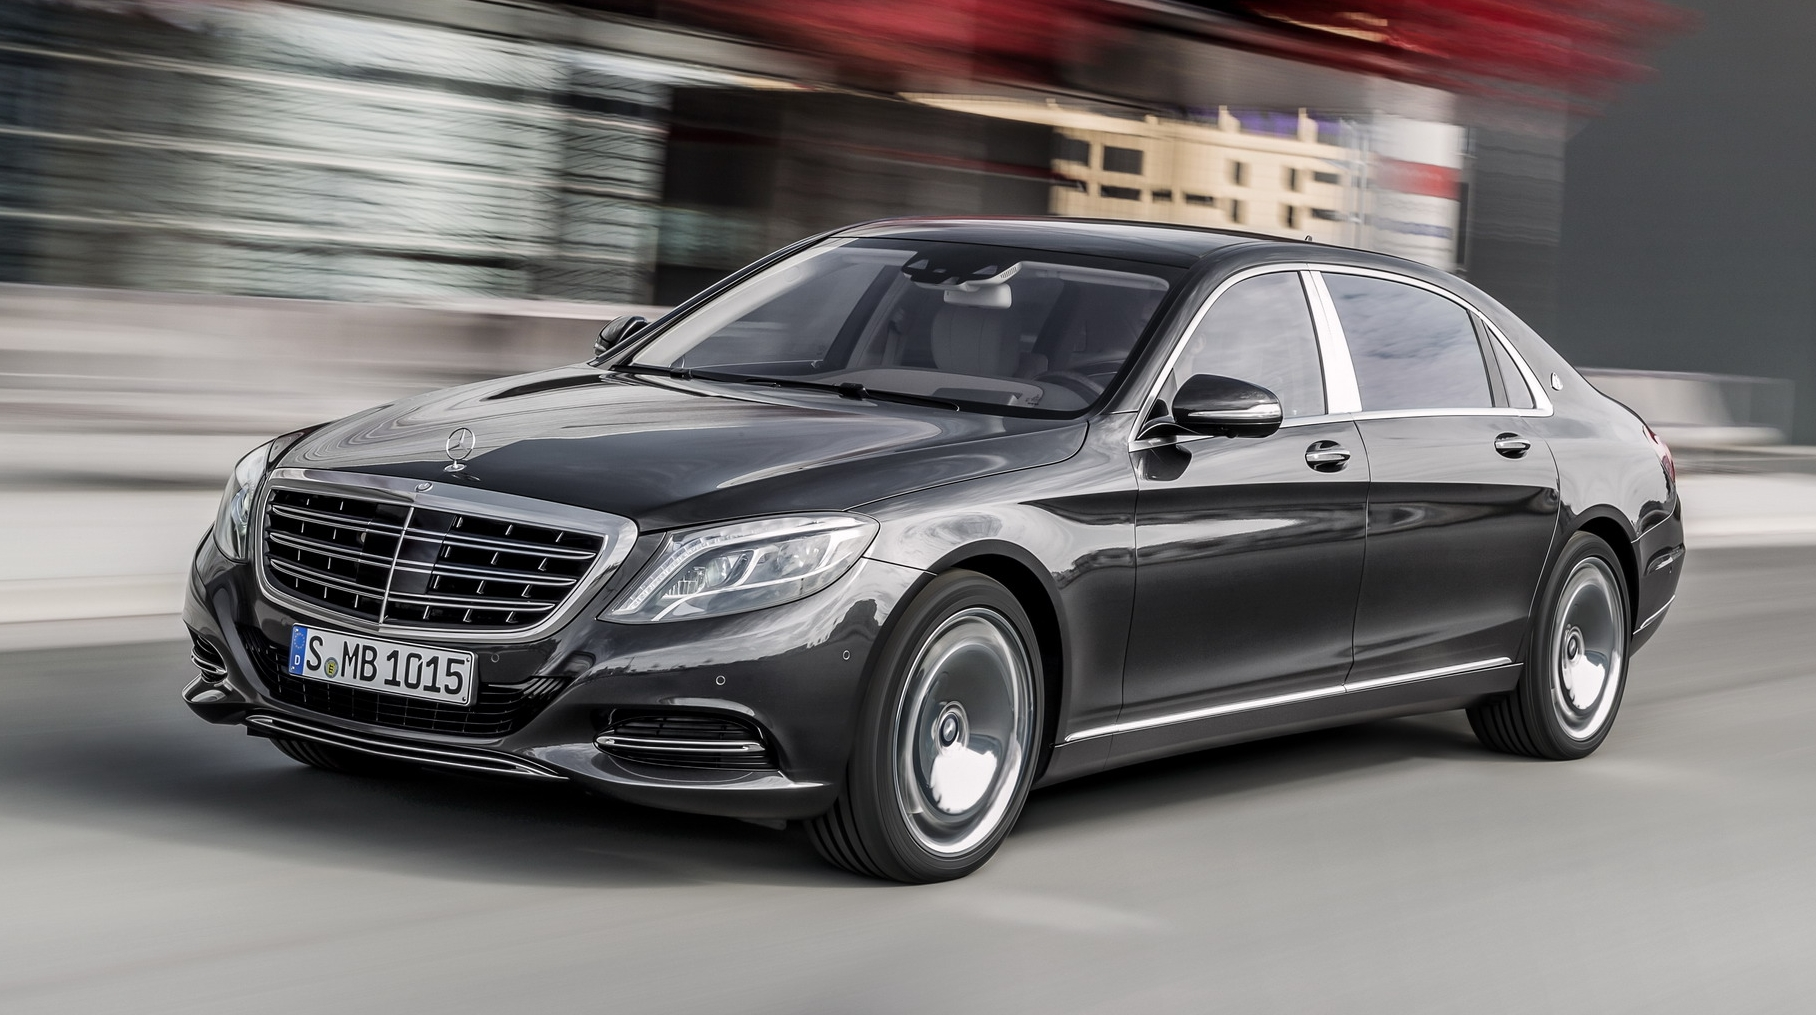 2016 mercedes maybach s class top speed. Black Bedroom Furniture Sets. Home Design Ideas